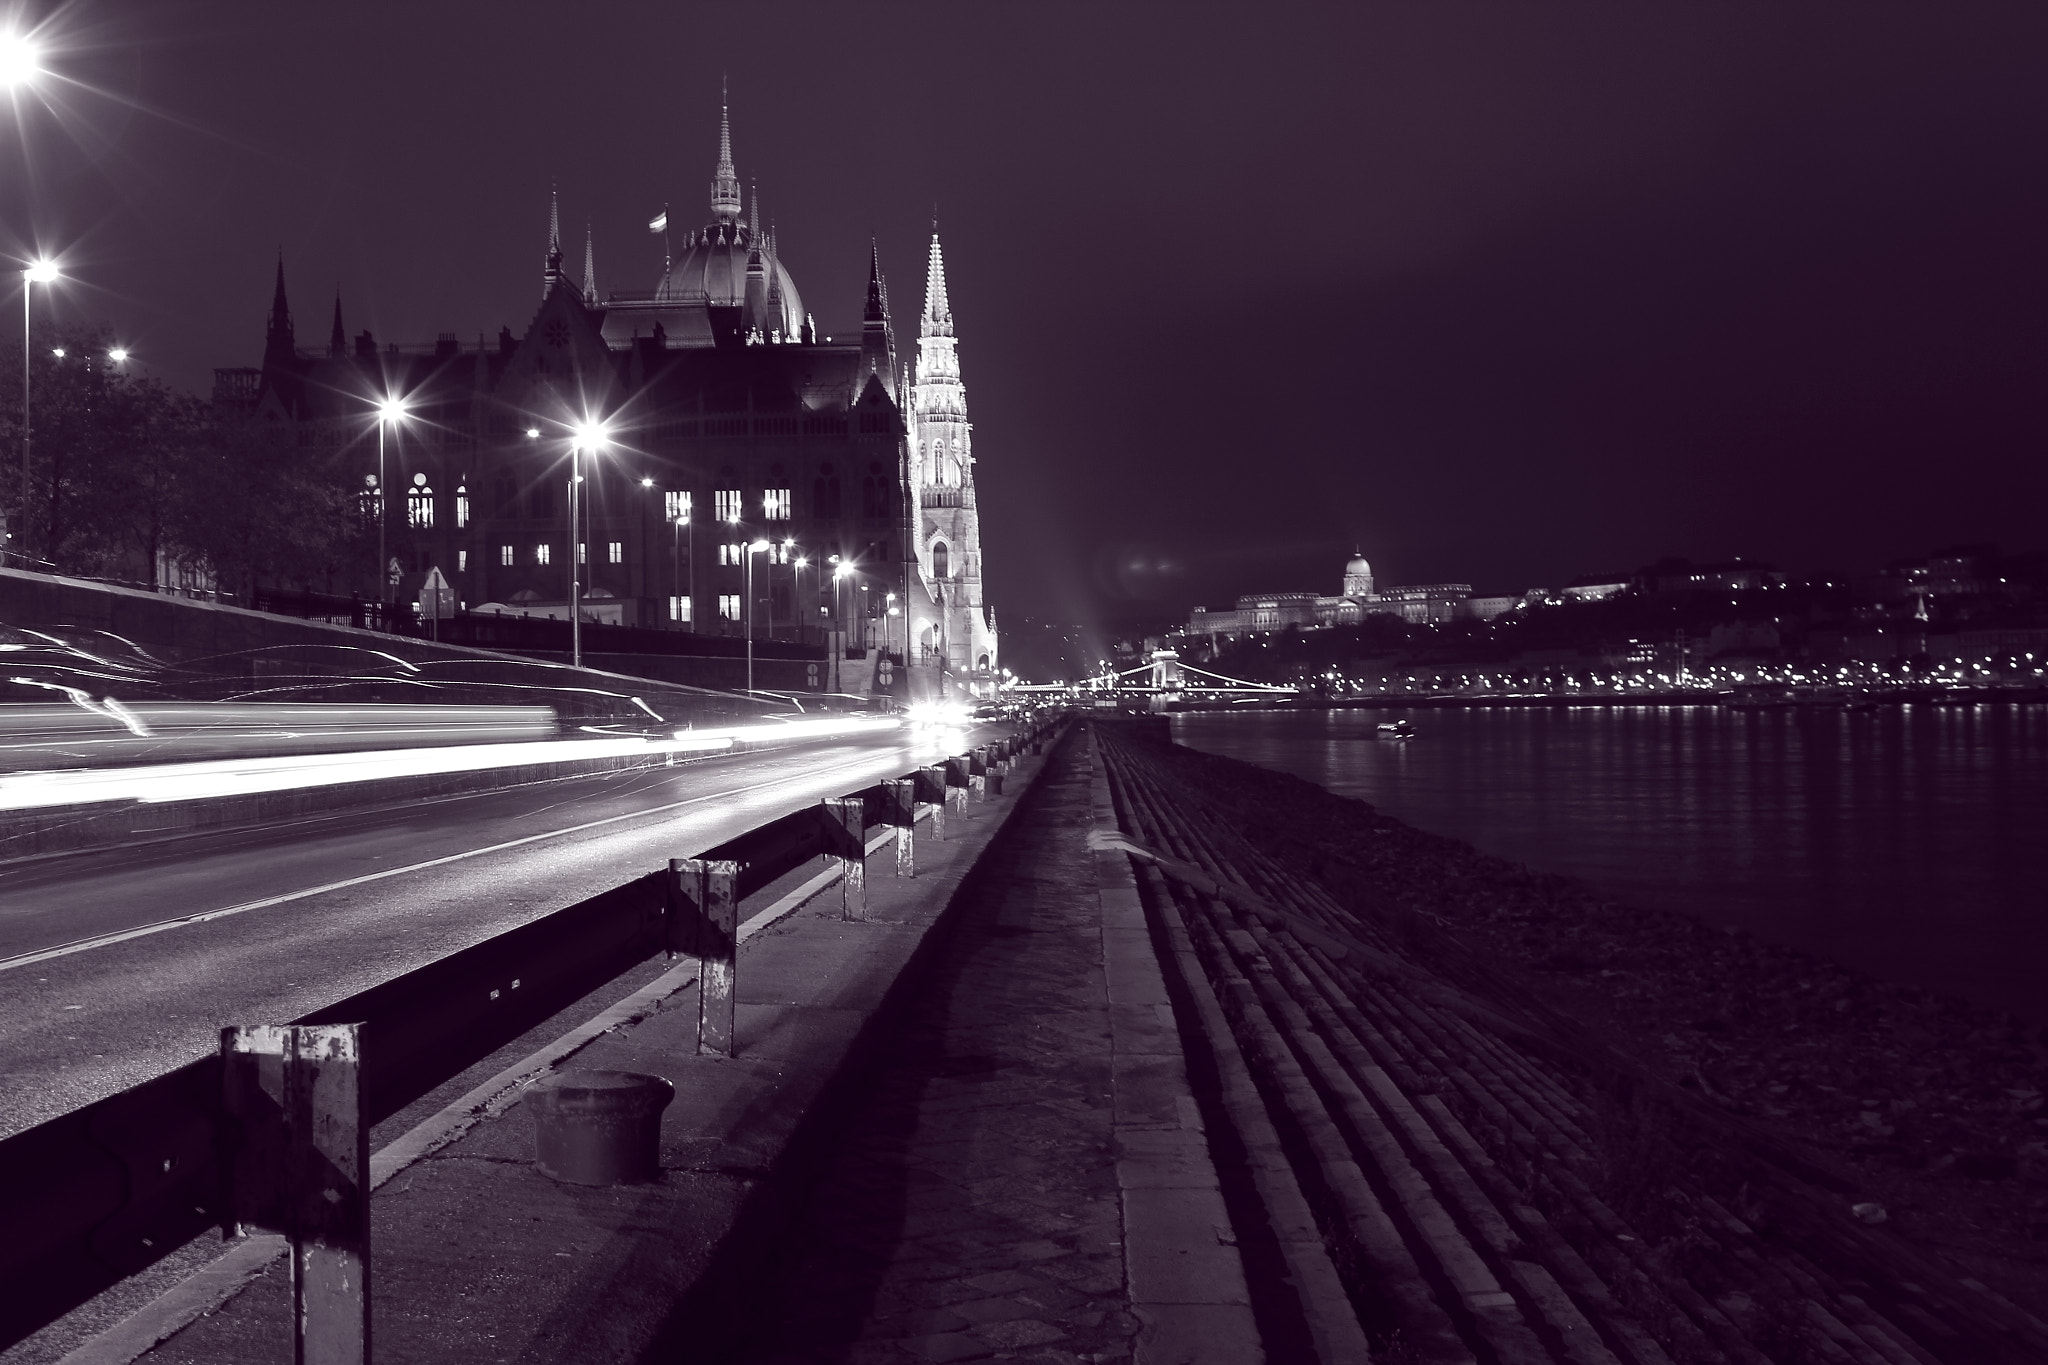 Photograph Parlament of Budapest by Alina Kadze on 500px